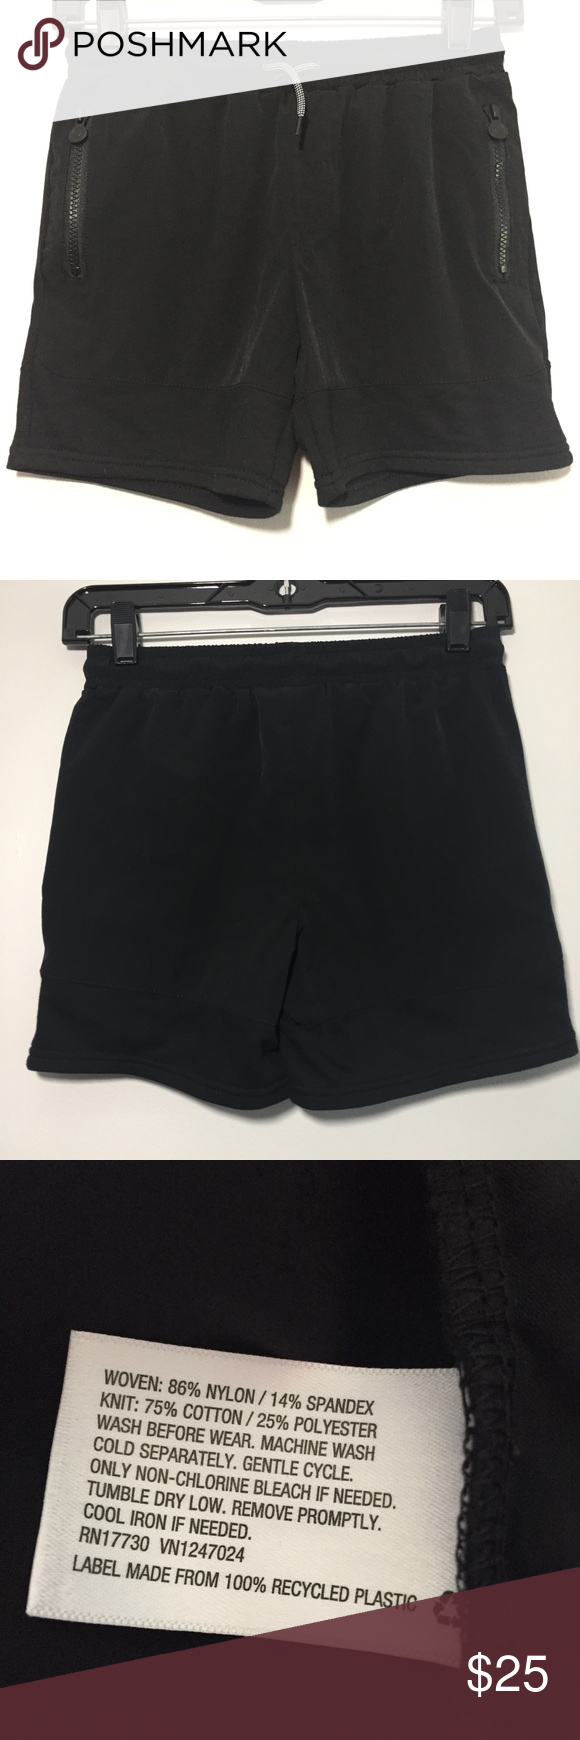 64d93491995e Hunter for Target Black Fitness Shorts Size 8 10 Hunter for Target women s  outdoor athletic shorts I m 0 2 in regular sizes and this 8 10 is tight on  me.